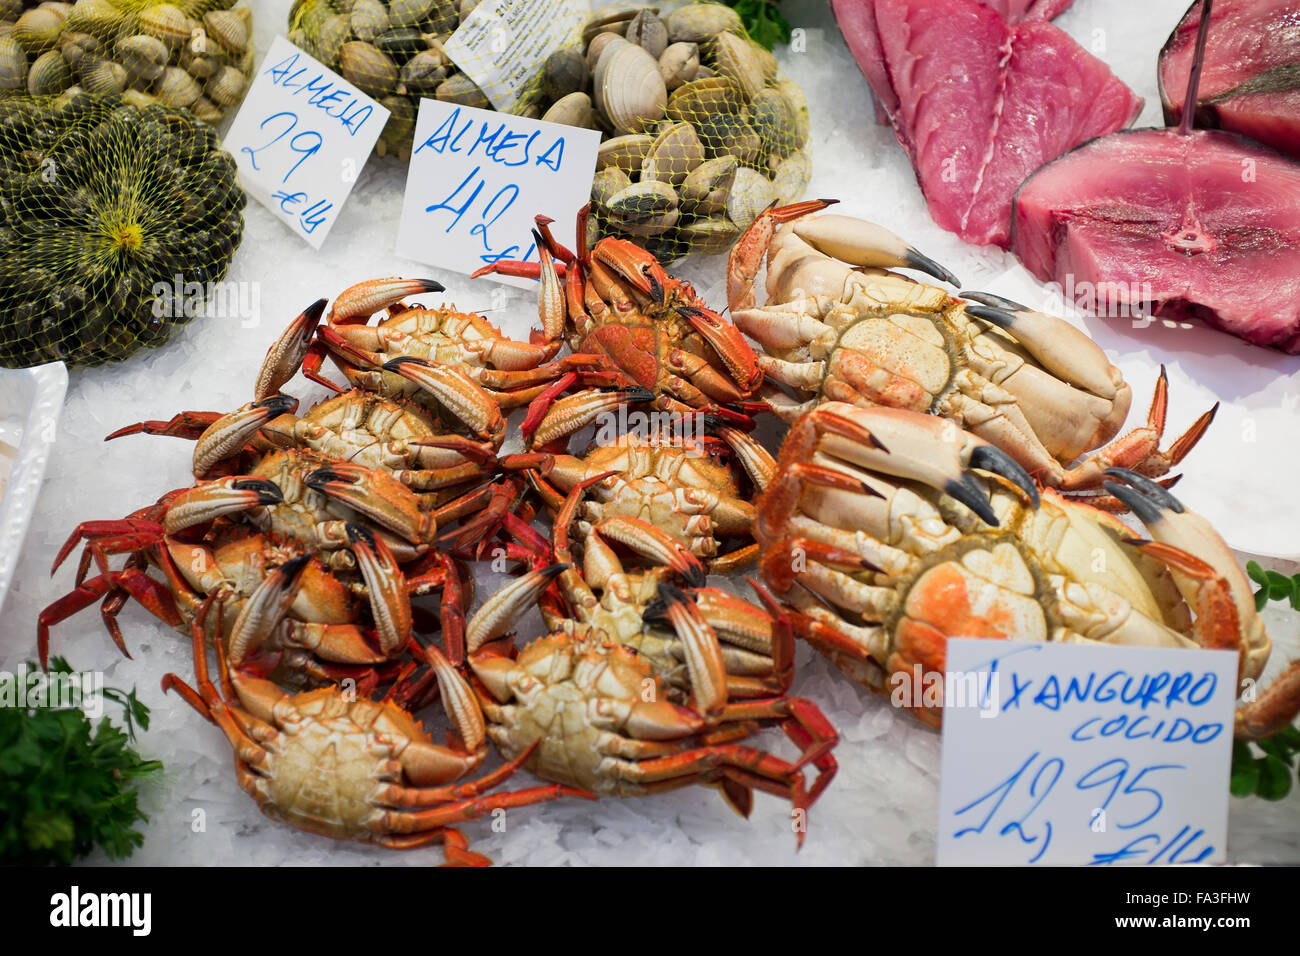 Crabs on sale at the Market in San Sebastian Spain - Stock Image